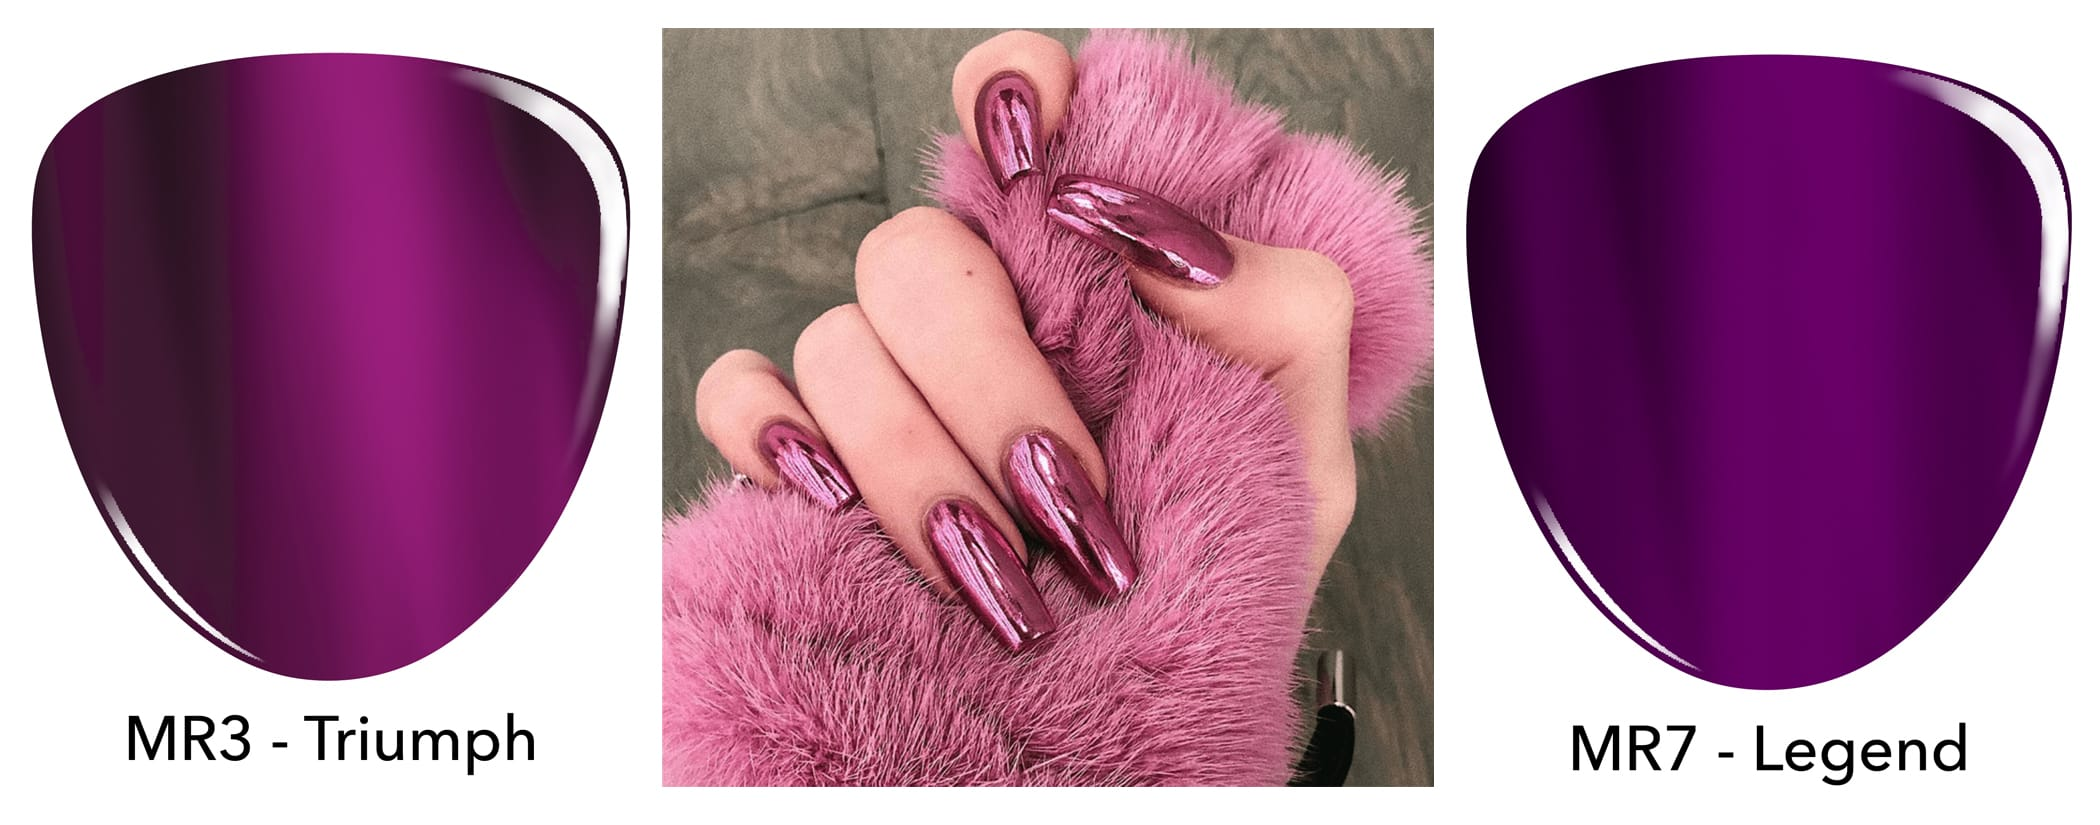 Photo of Kylie Jenner nails pink chrome nails dip powder, revel nail dip powder